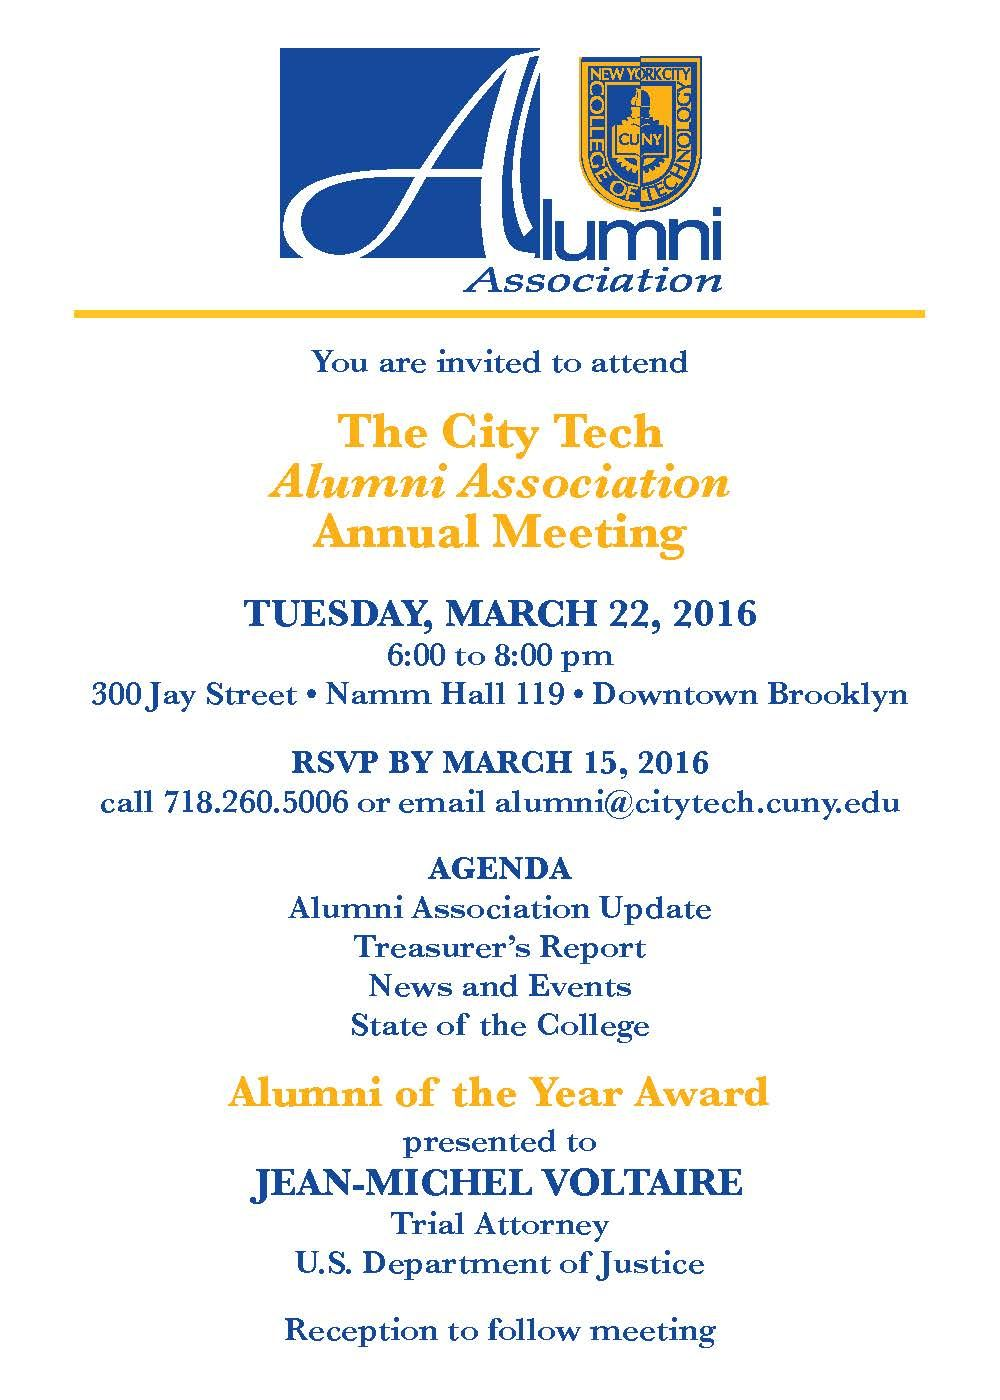 2016 Alumni Association Annual Meeting invitation Events Pinterest